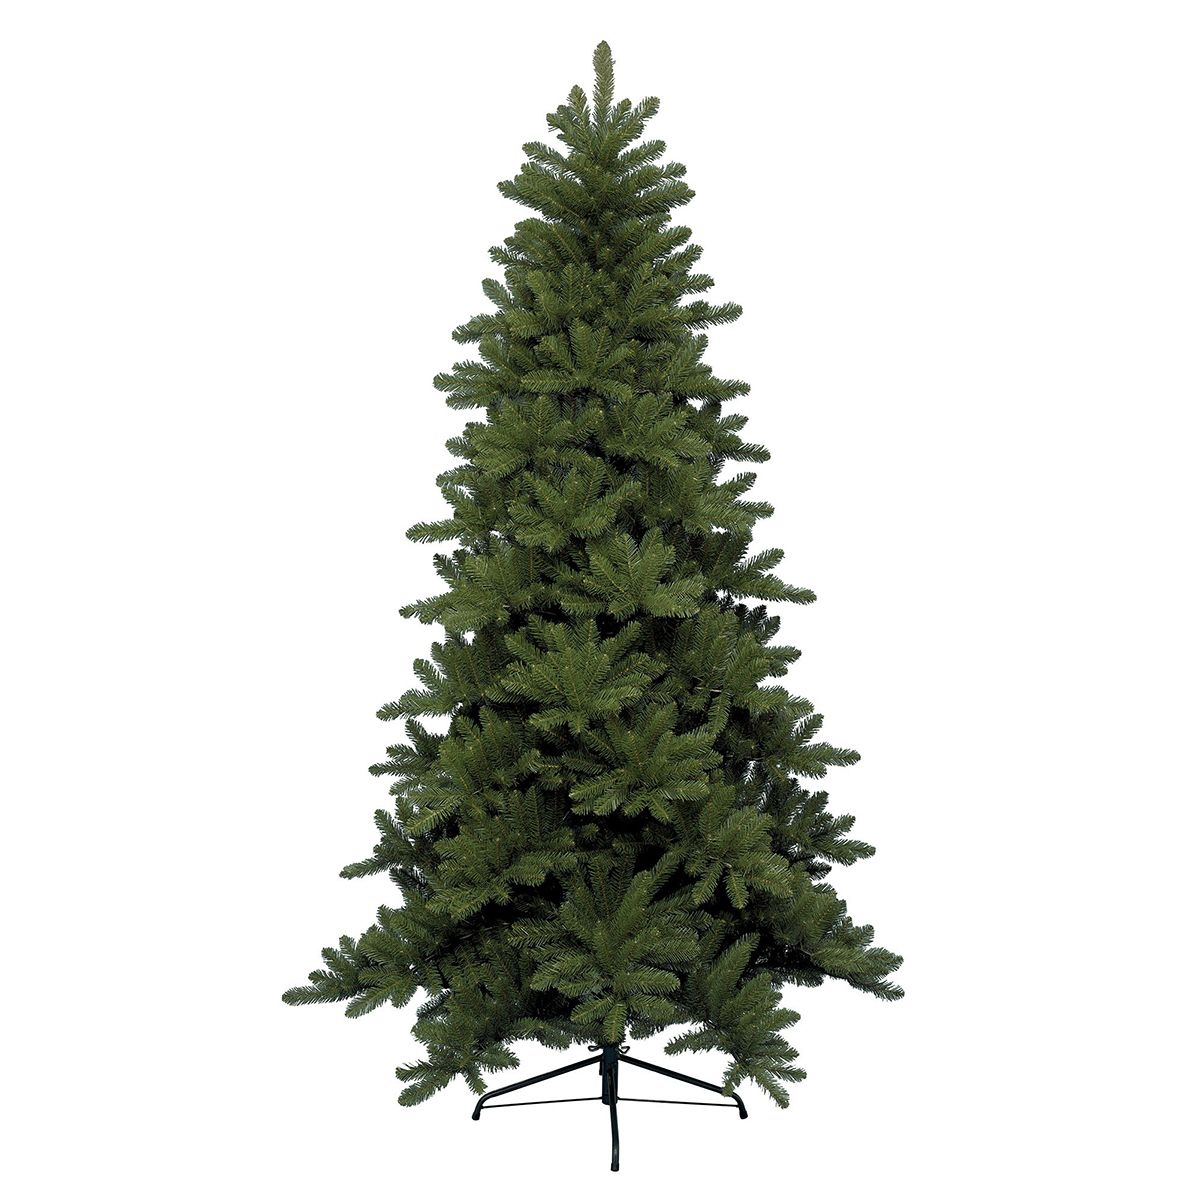 Leroy Merlin Sapin Artificiel Parcel In The Attic 5ft Green Pine Artificial Christmas Tree With